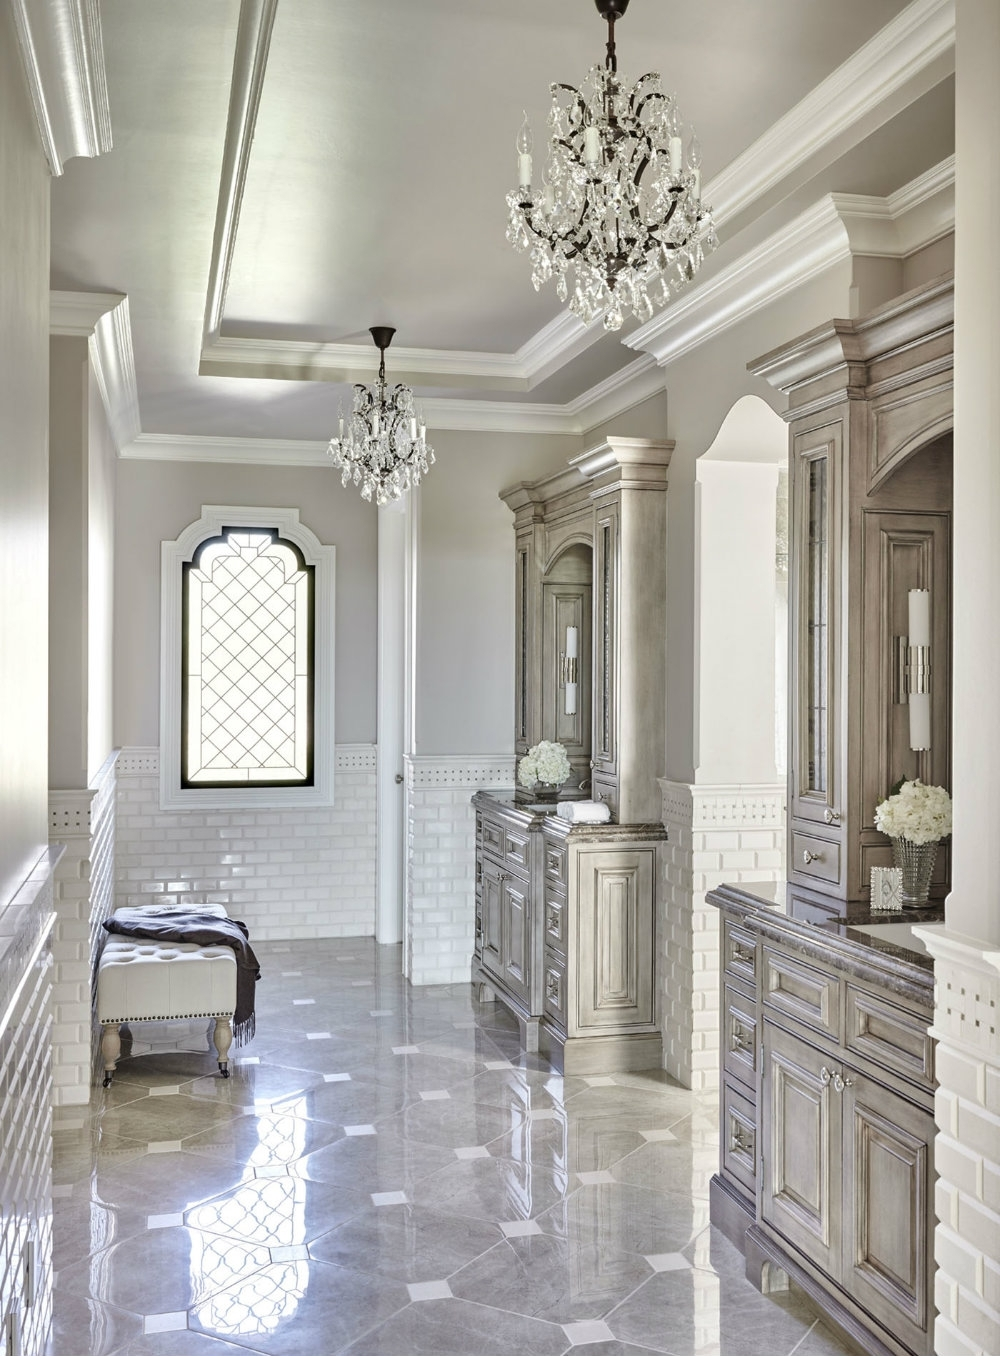 Bathroom Chandeliers With Preferred Astonishing Bathroom Chandeliers For A Luxury Bathroom – Modern (View 19 of 20)